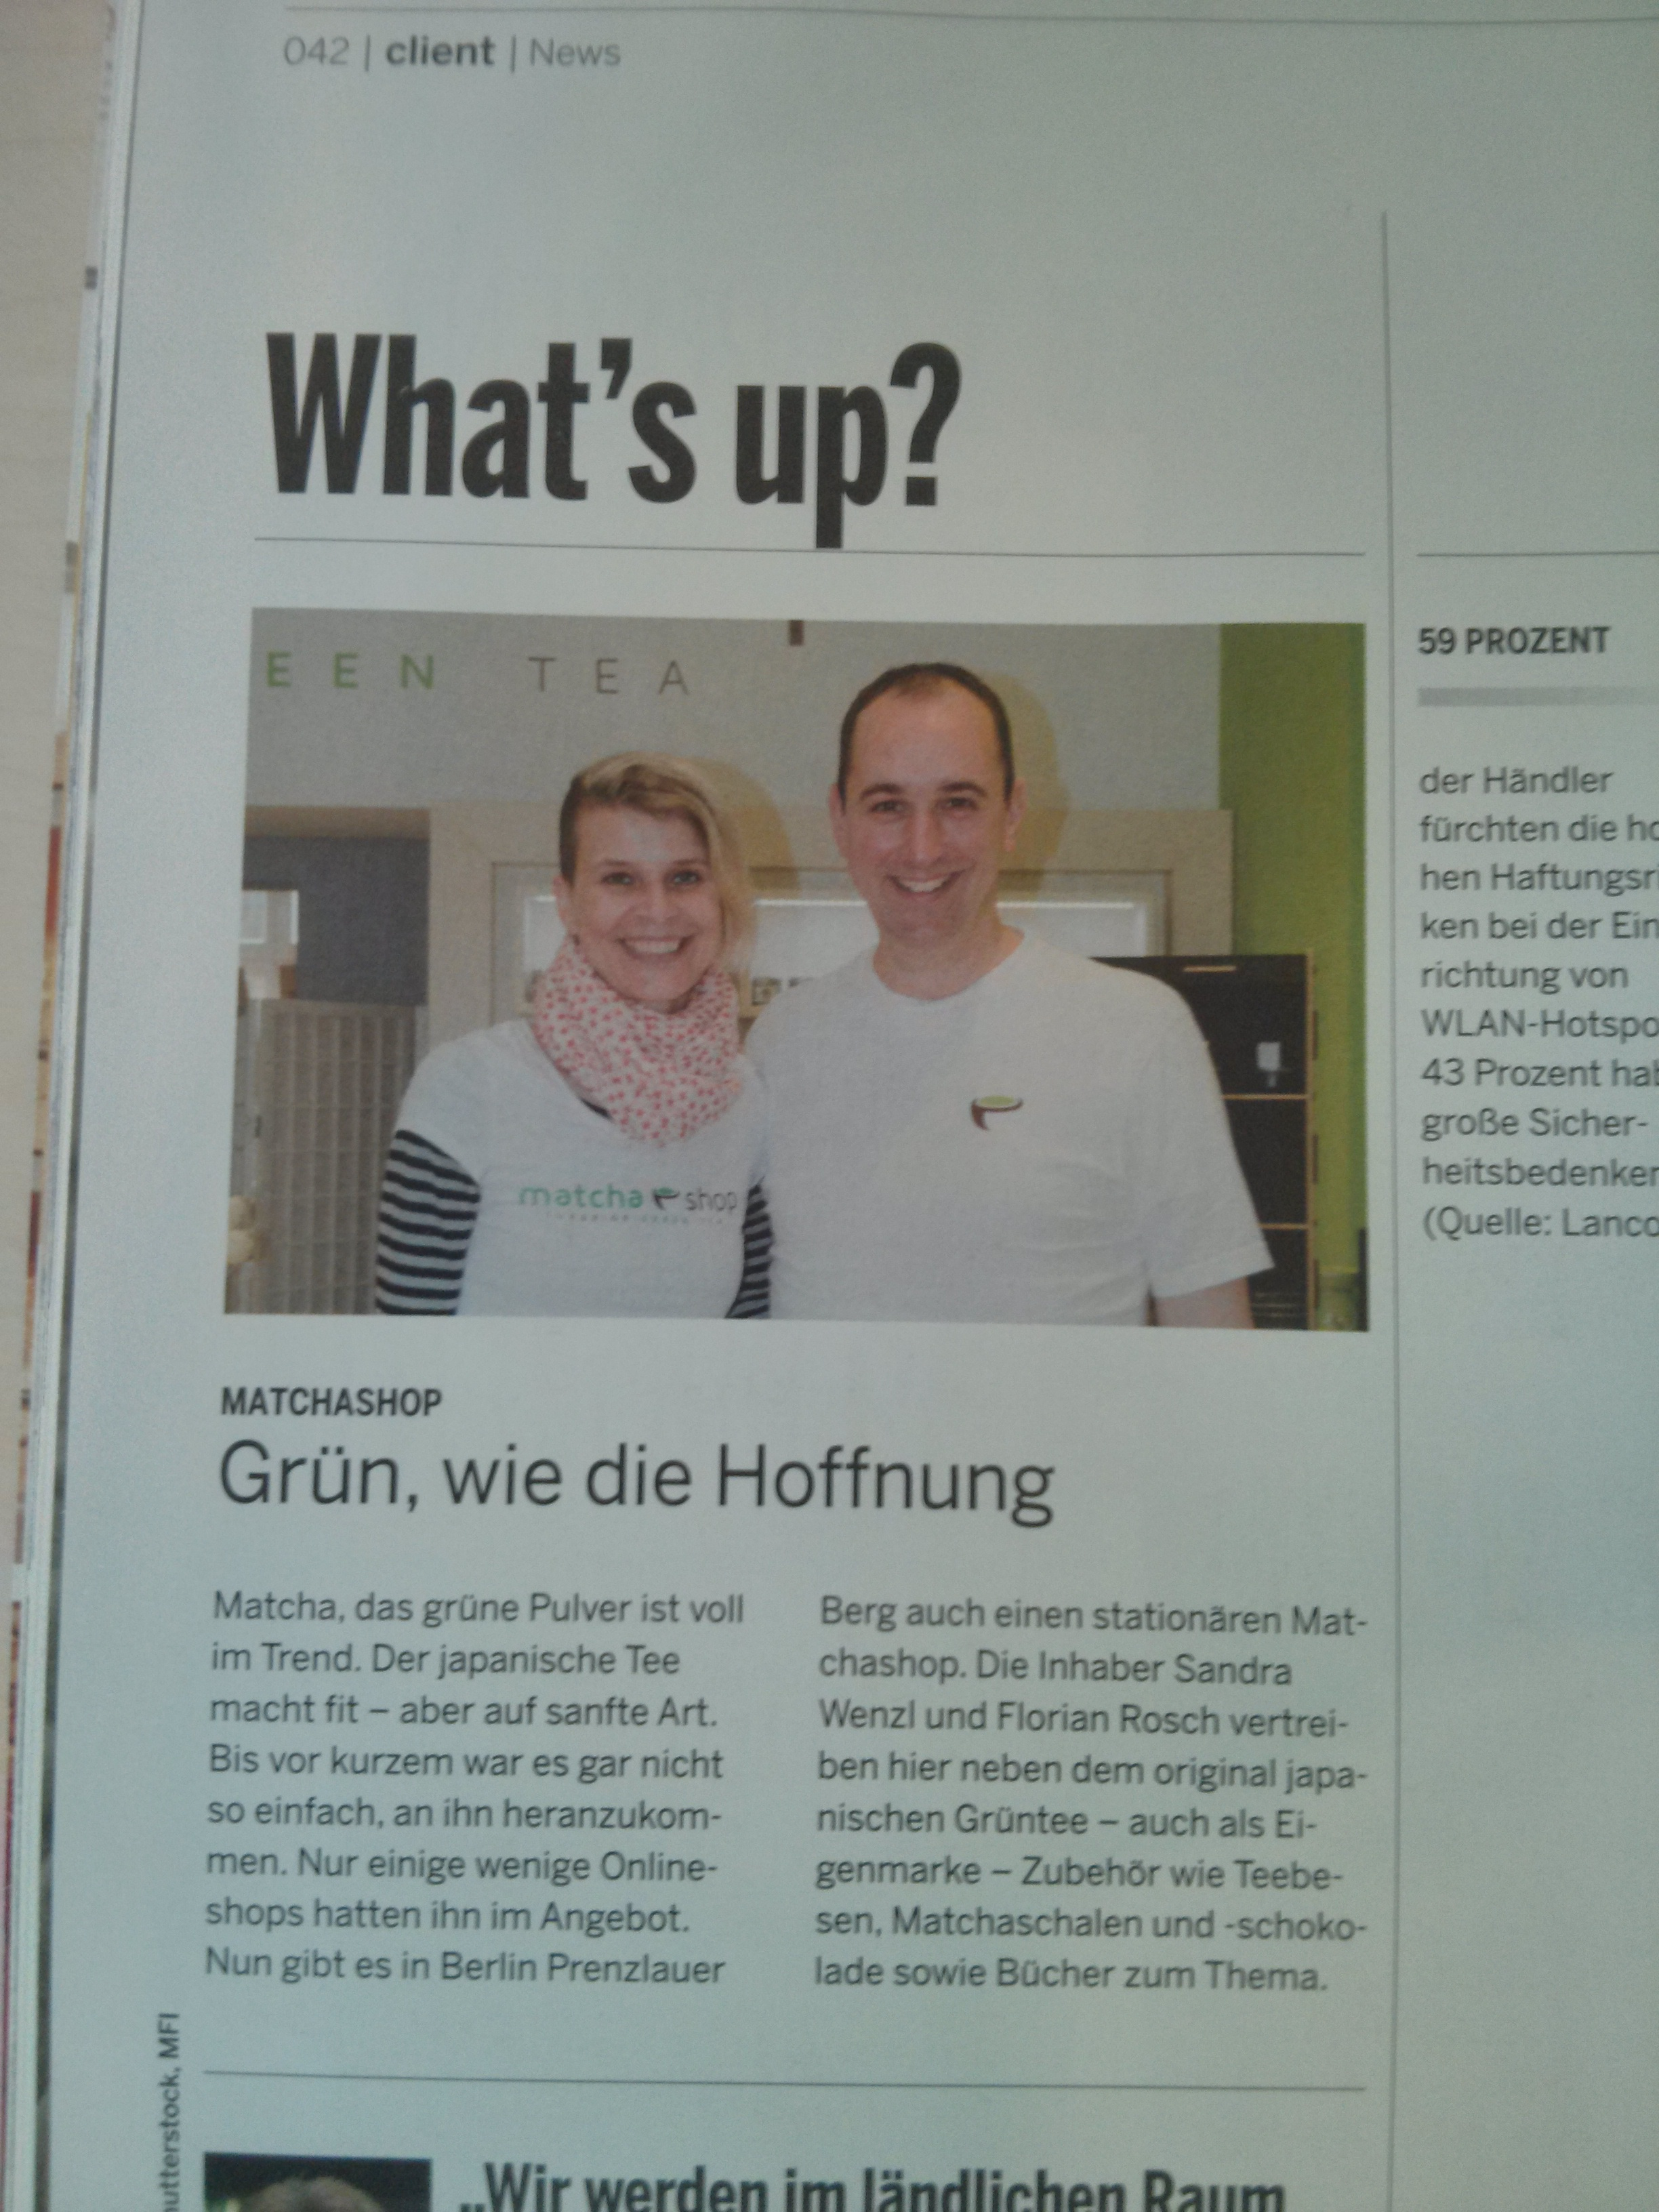 matchashop im Magazin BusinessHandel